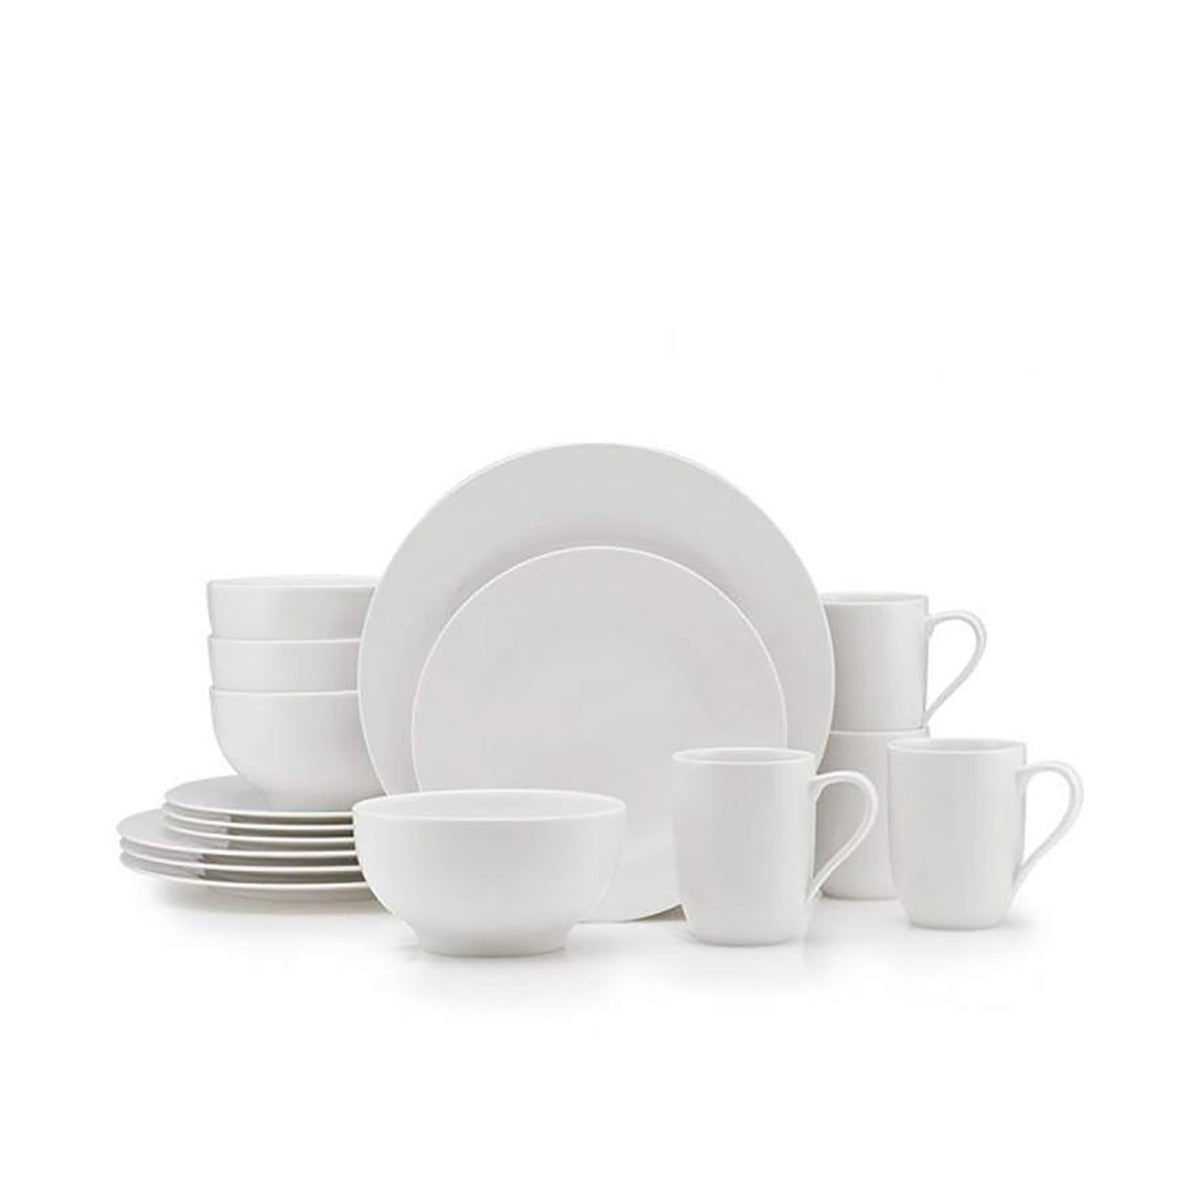 For Me 16pce Dinnerset